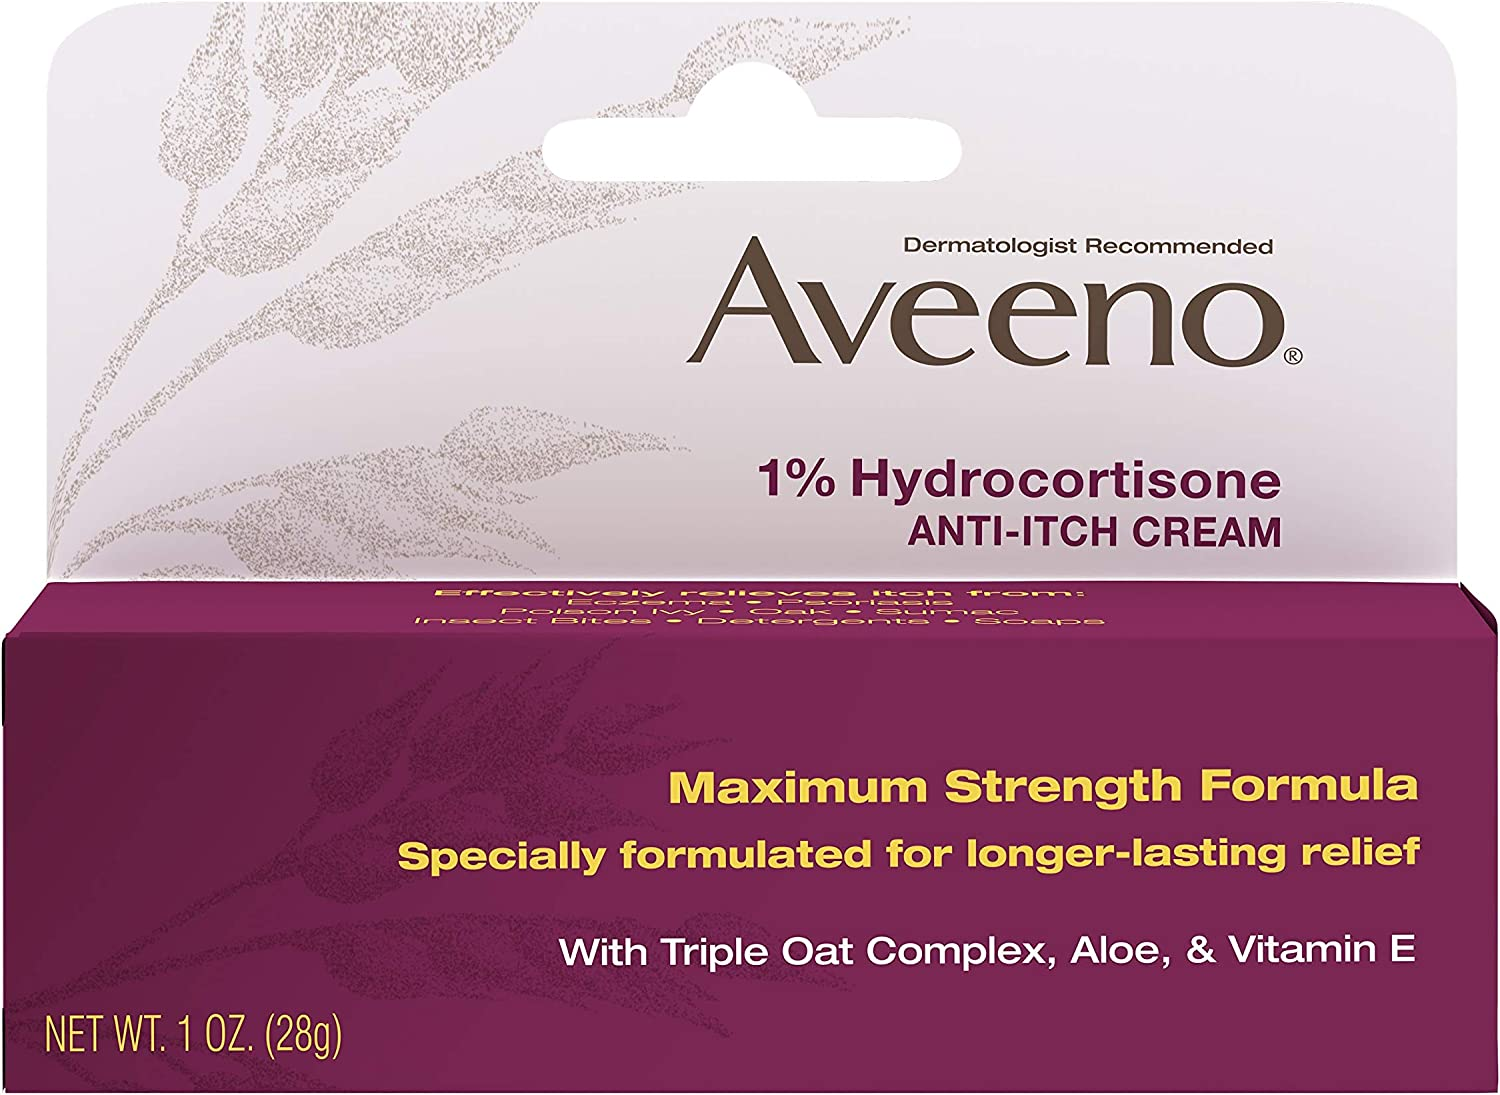 Aveeno Maximum Strength 1% Hydrocortisone Anti-Itch Cream with Pure Oat Essence, Triple Oat complex, Aloe & Vitamin E, For Itch, Rash & Redness Relief, 1 oz (Pack of 2) : Beauty